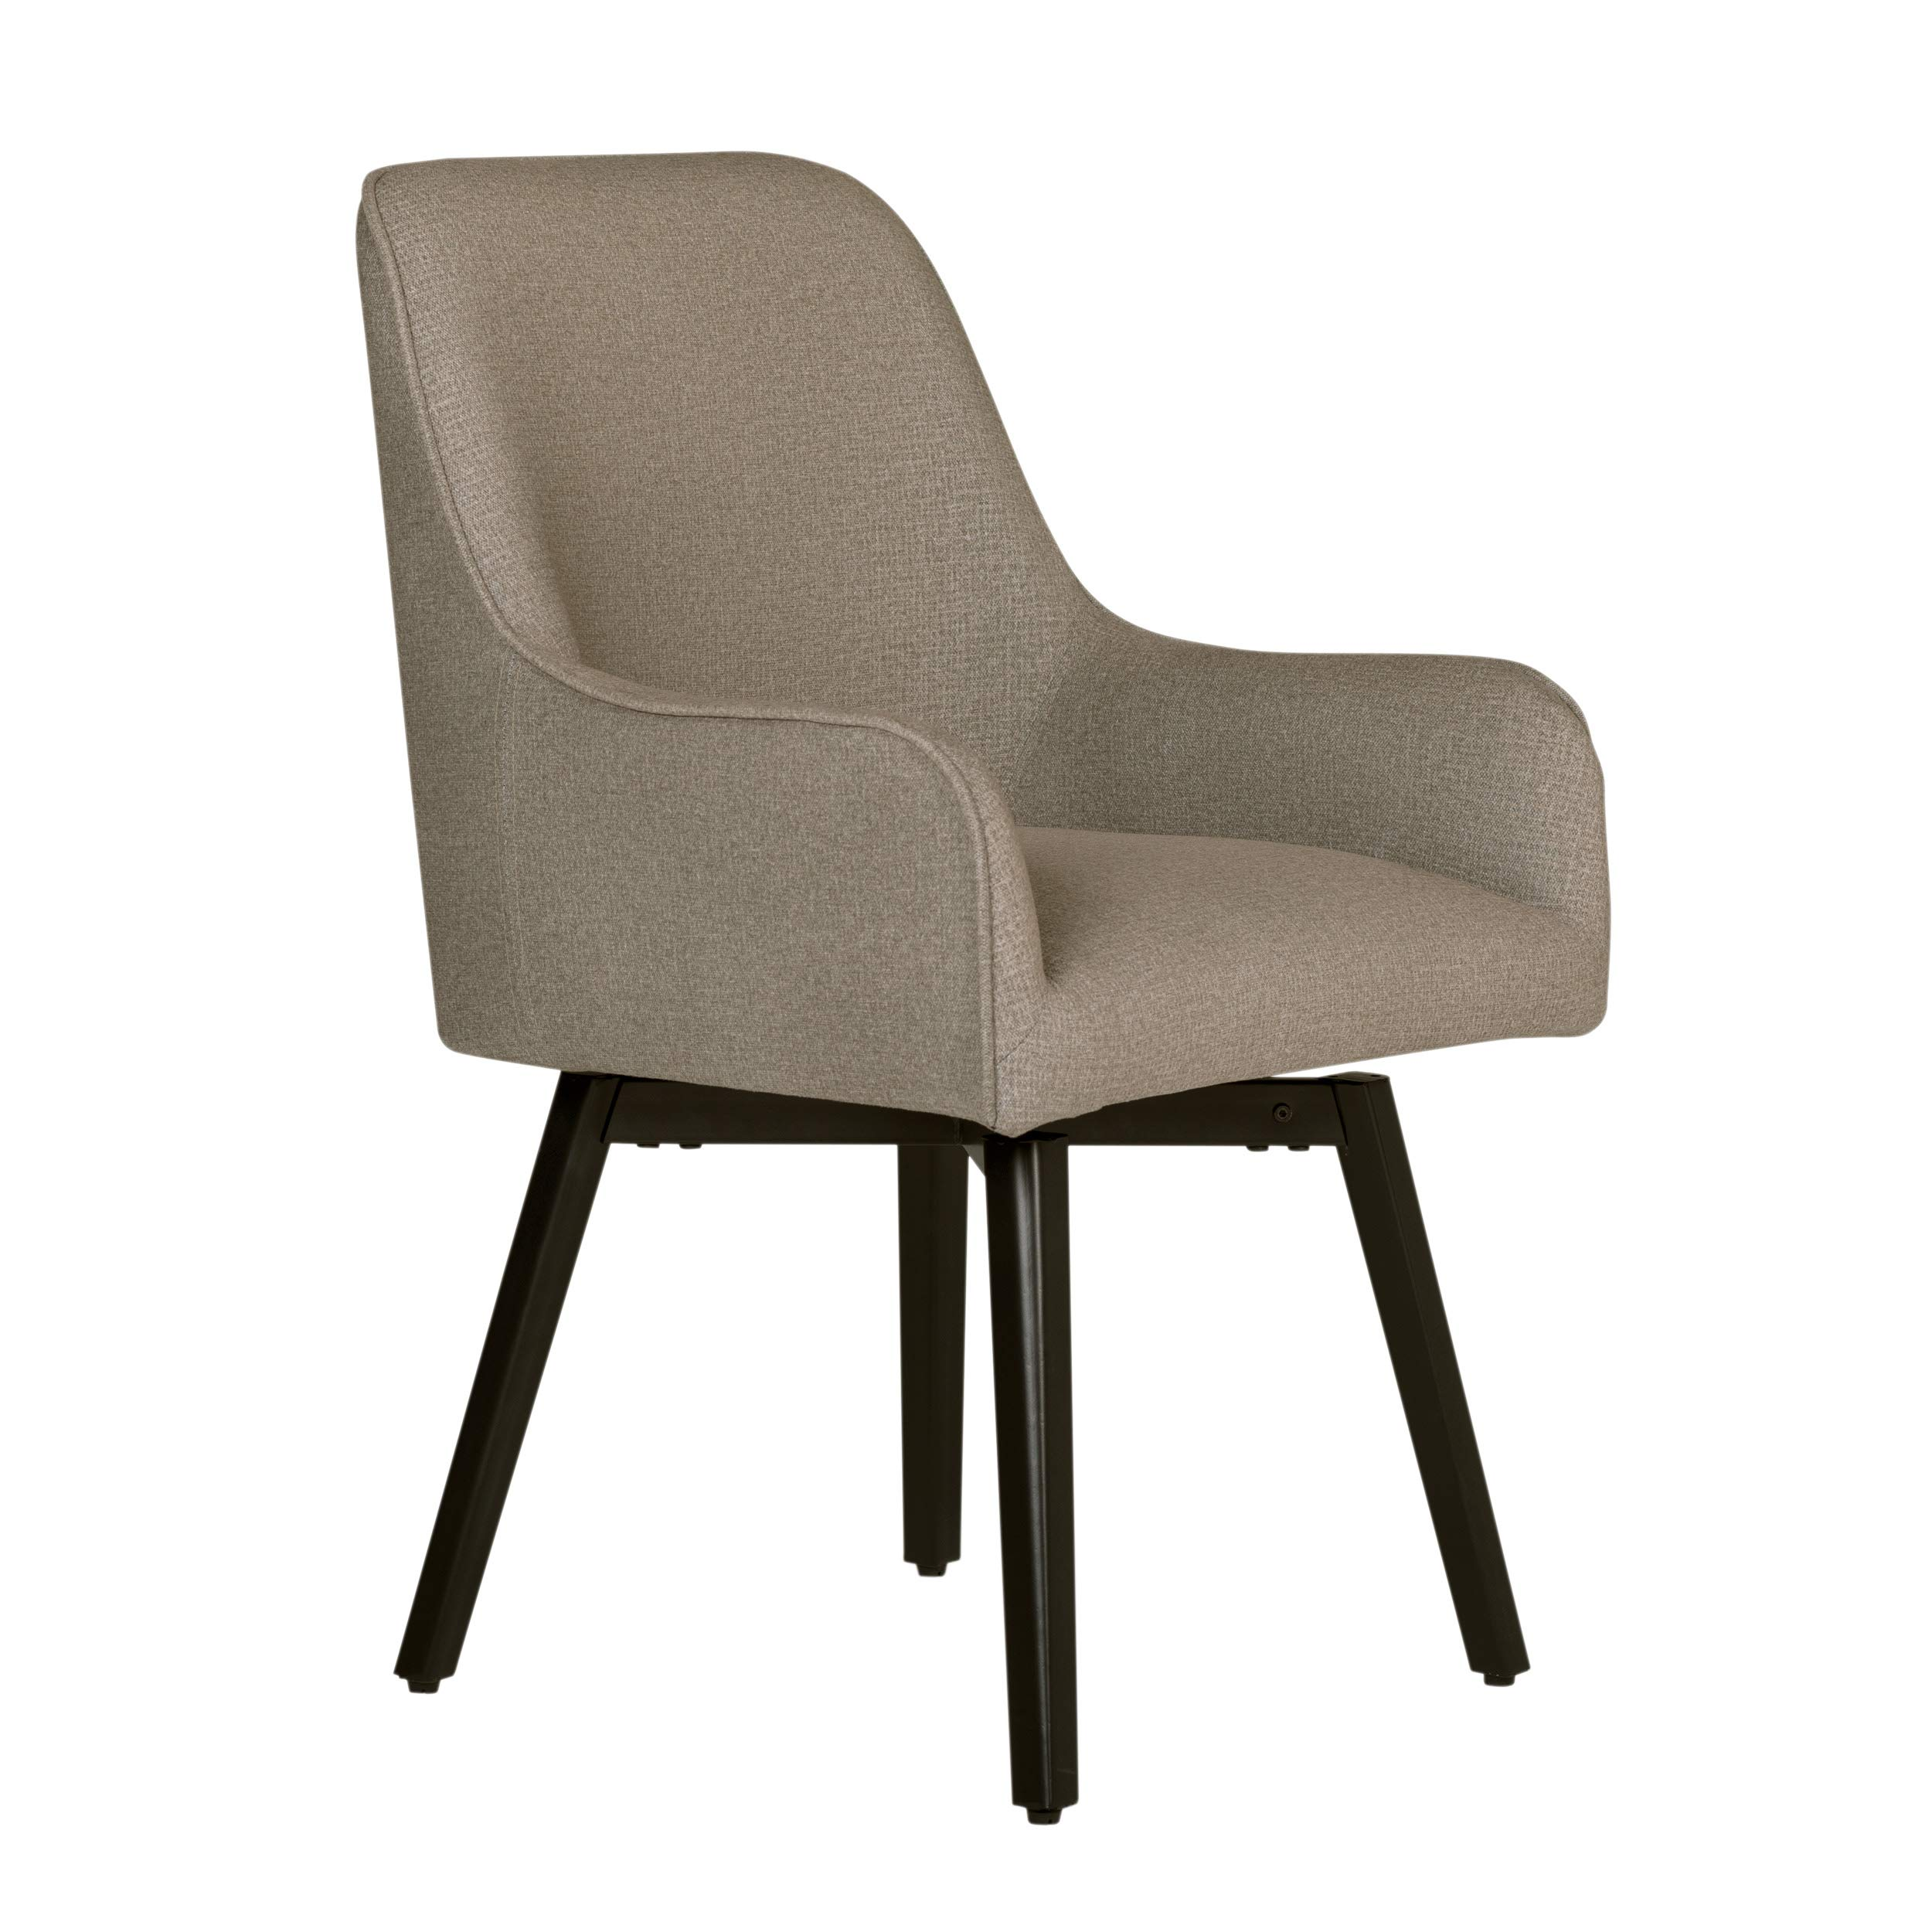 Studio Designs Home Contemporary Spire Luxe Swivel, Rotating, Upholstered, Accent Dining/Office Chair with Arms and Metal Legs in Camel Beige